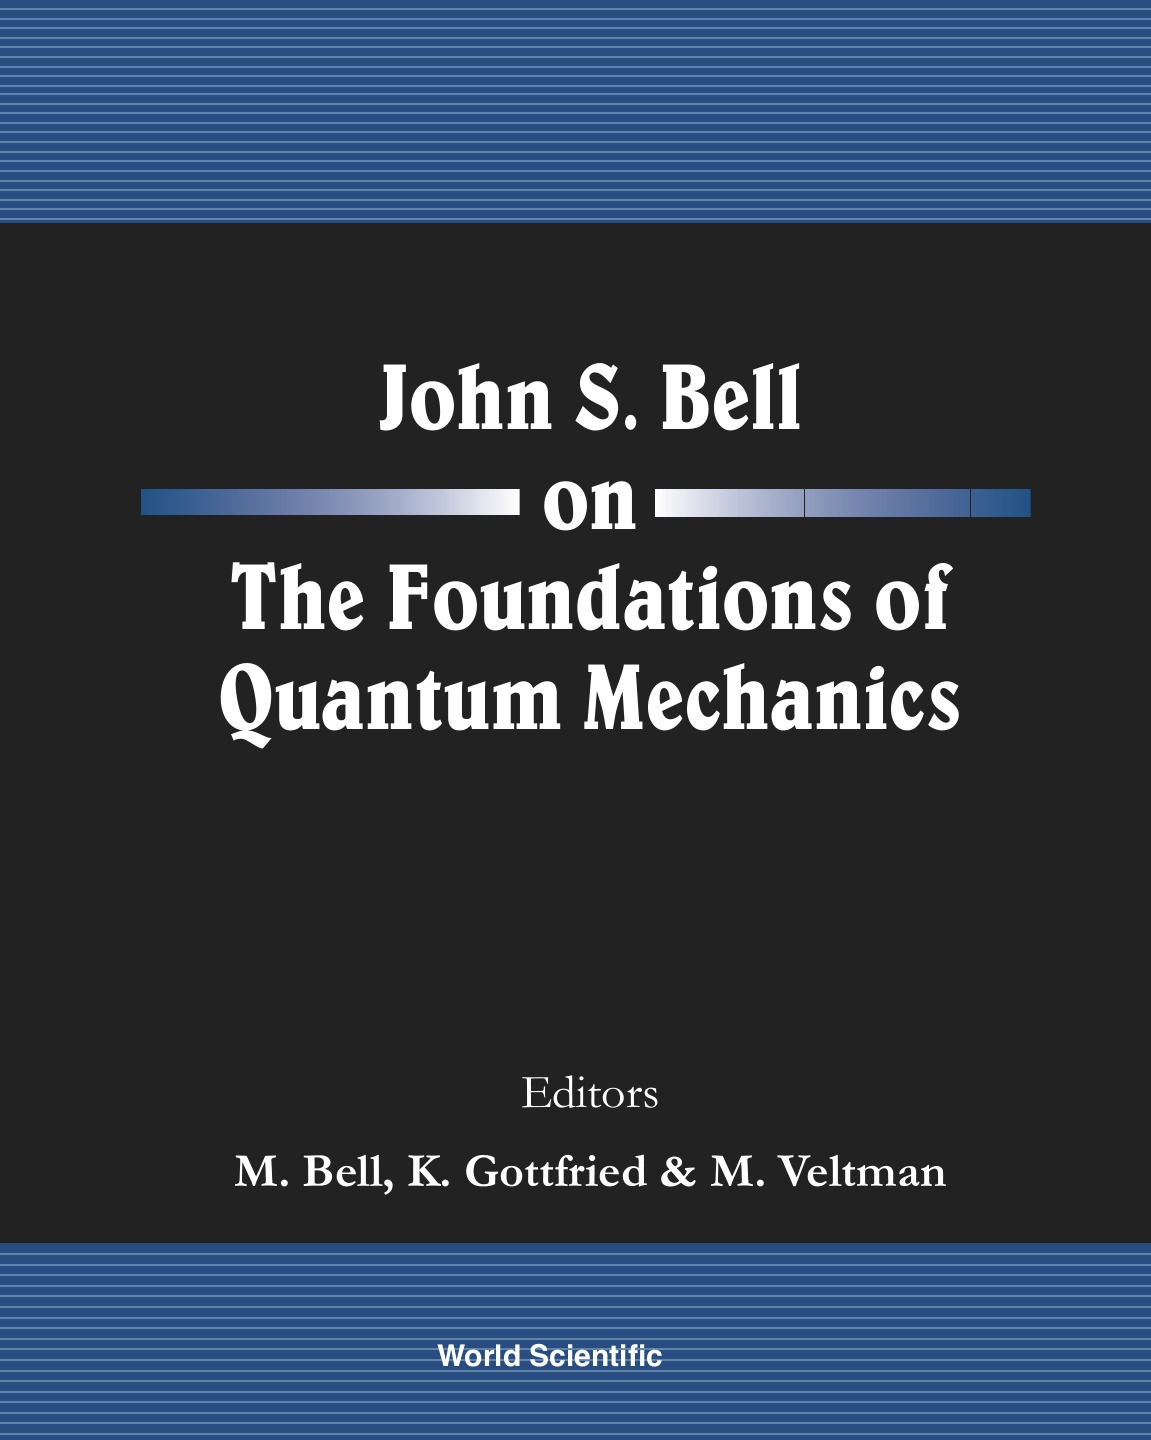 c0062b0cb12da1 This book is the most complete collection of John S Bell's research papers,  review articles and lecture notes on the foundations of quantum mechanics.